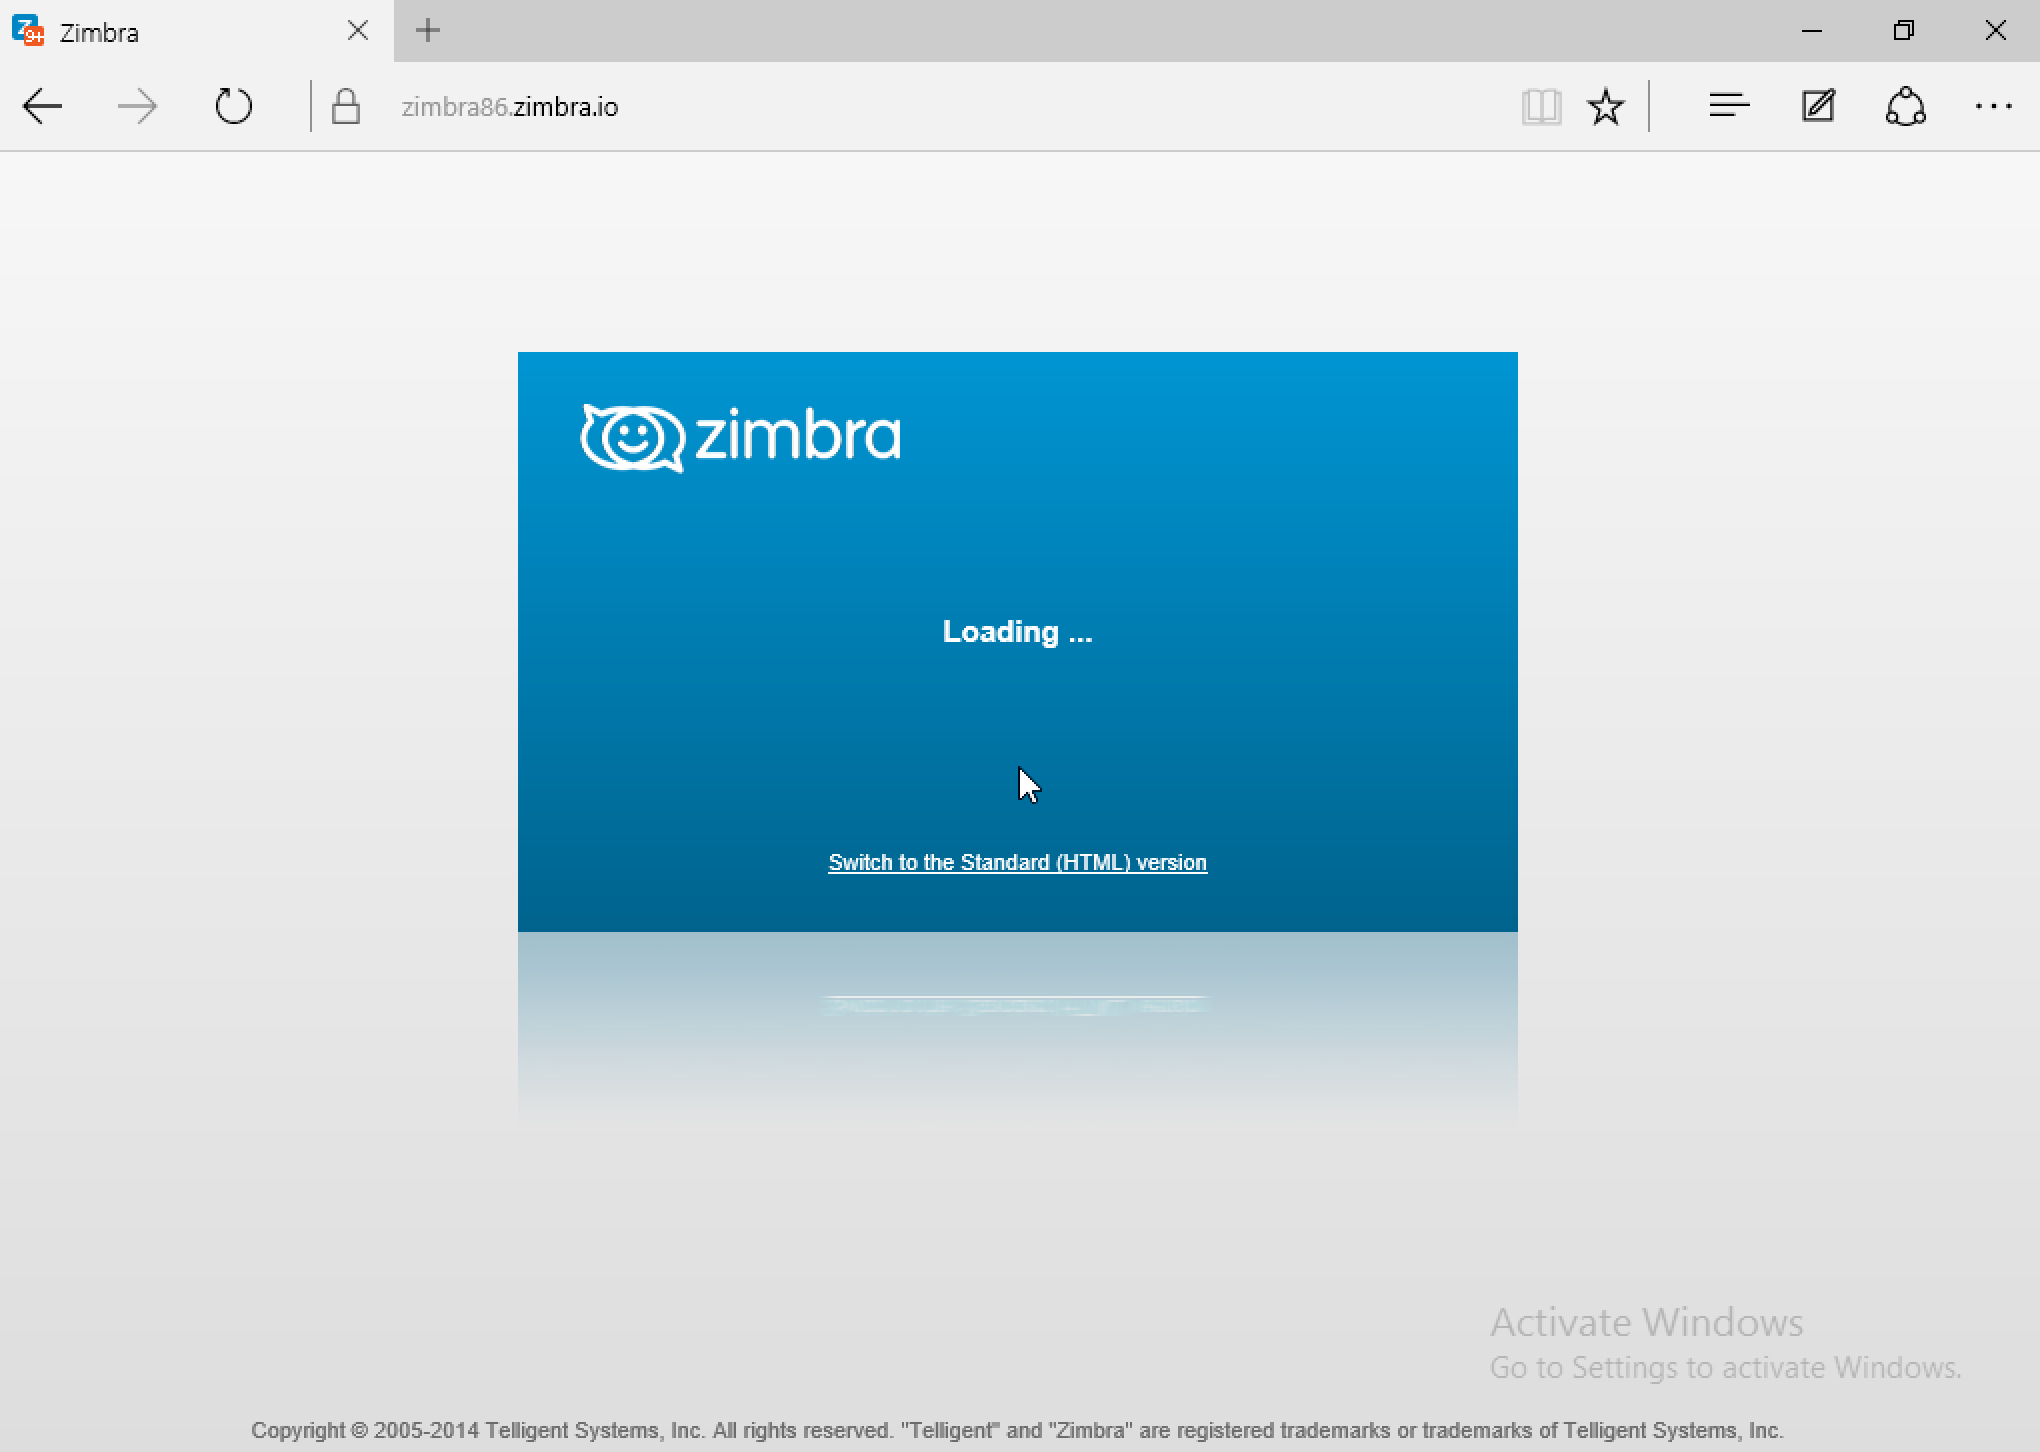 Zimbra-webclient-windows10-8.0.9-002.png